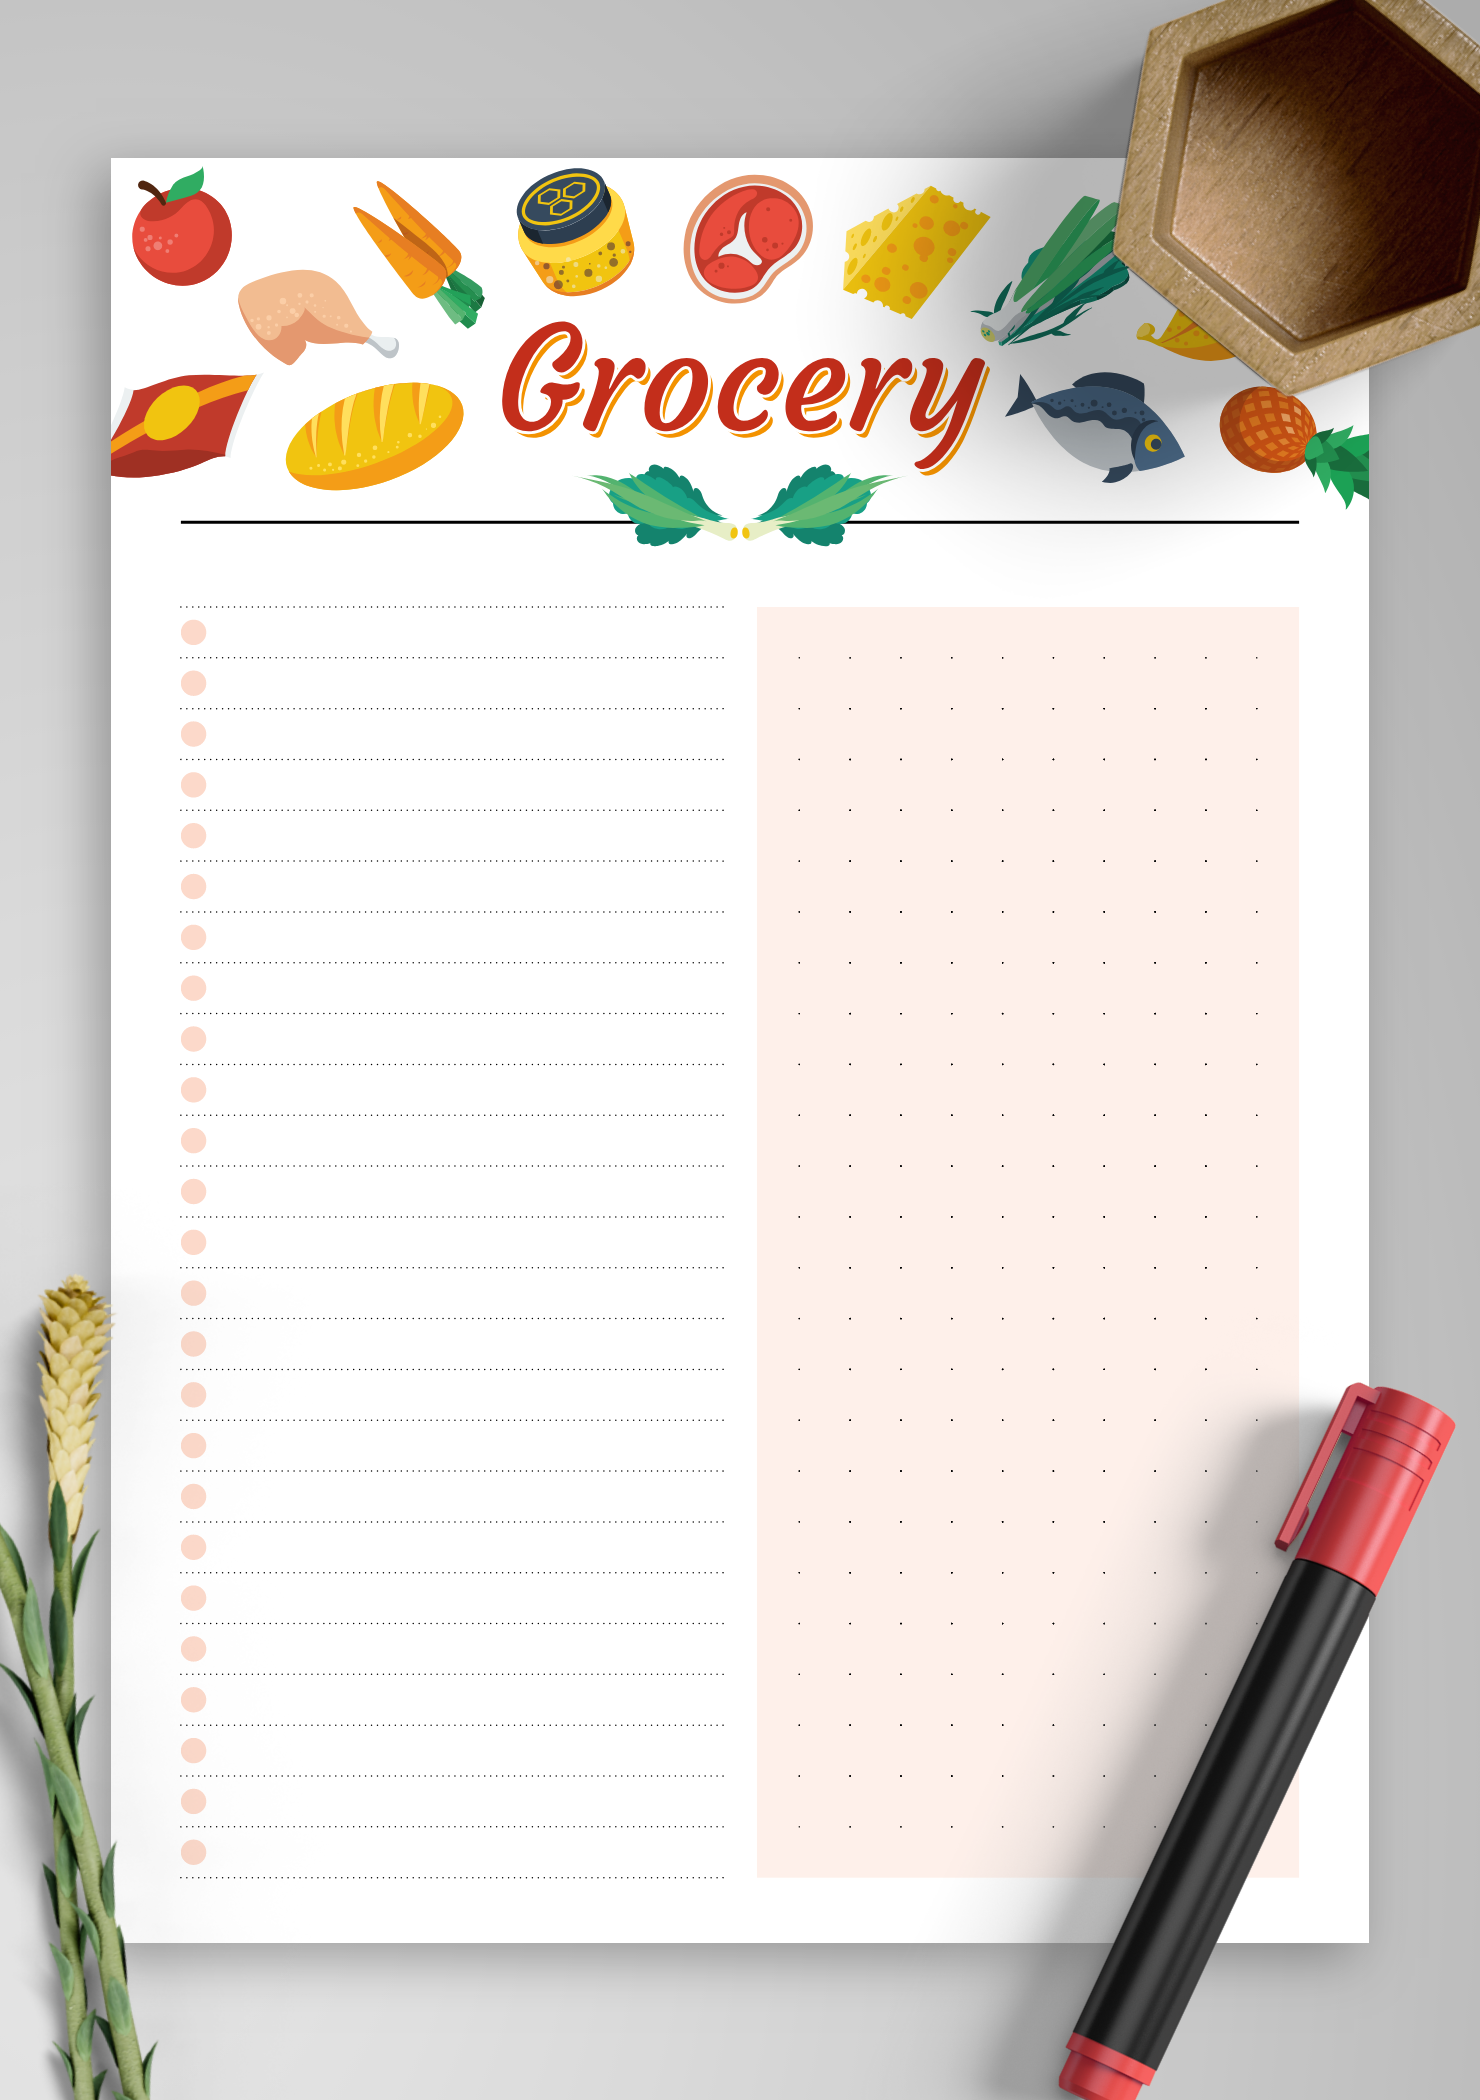 graphic about Free Printable Stationery Pdf named No cost Printable Easy colorful grocery checklist PDF Obtain